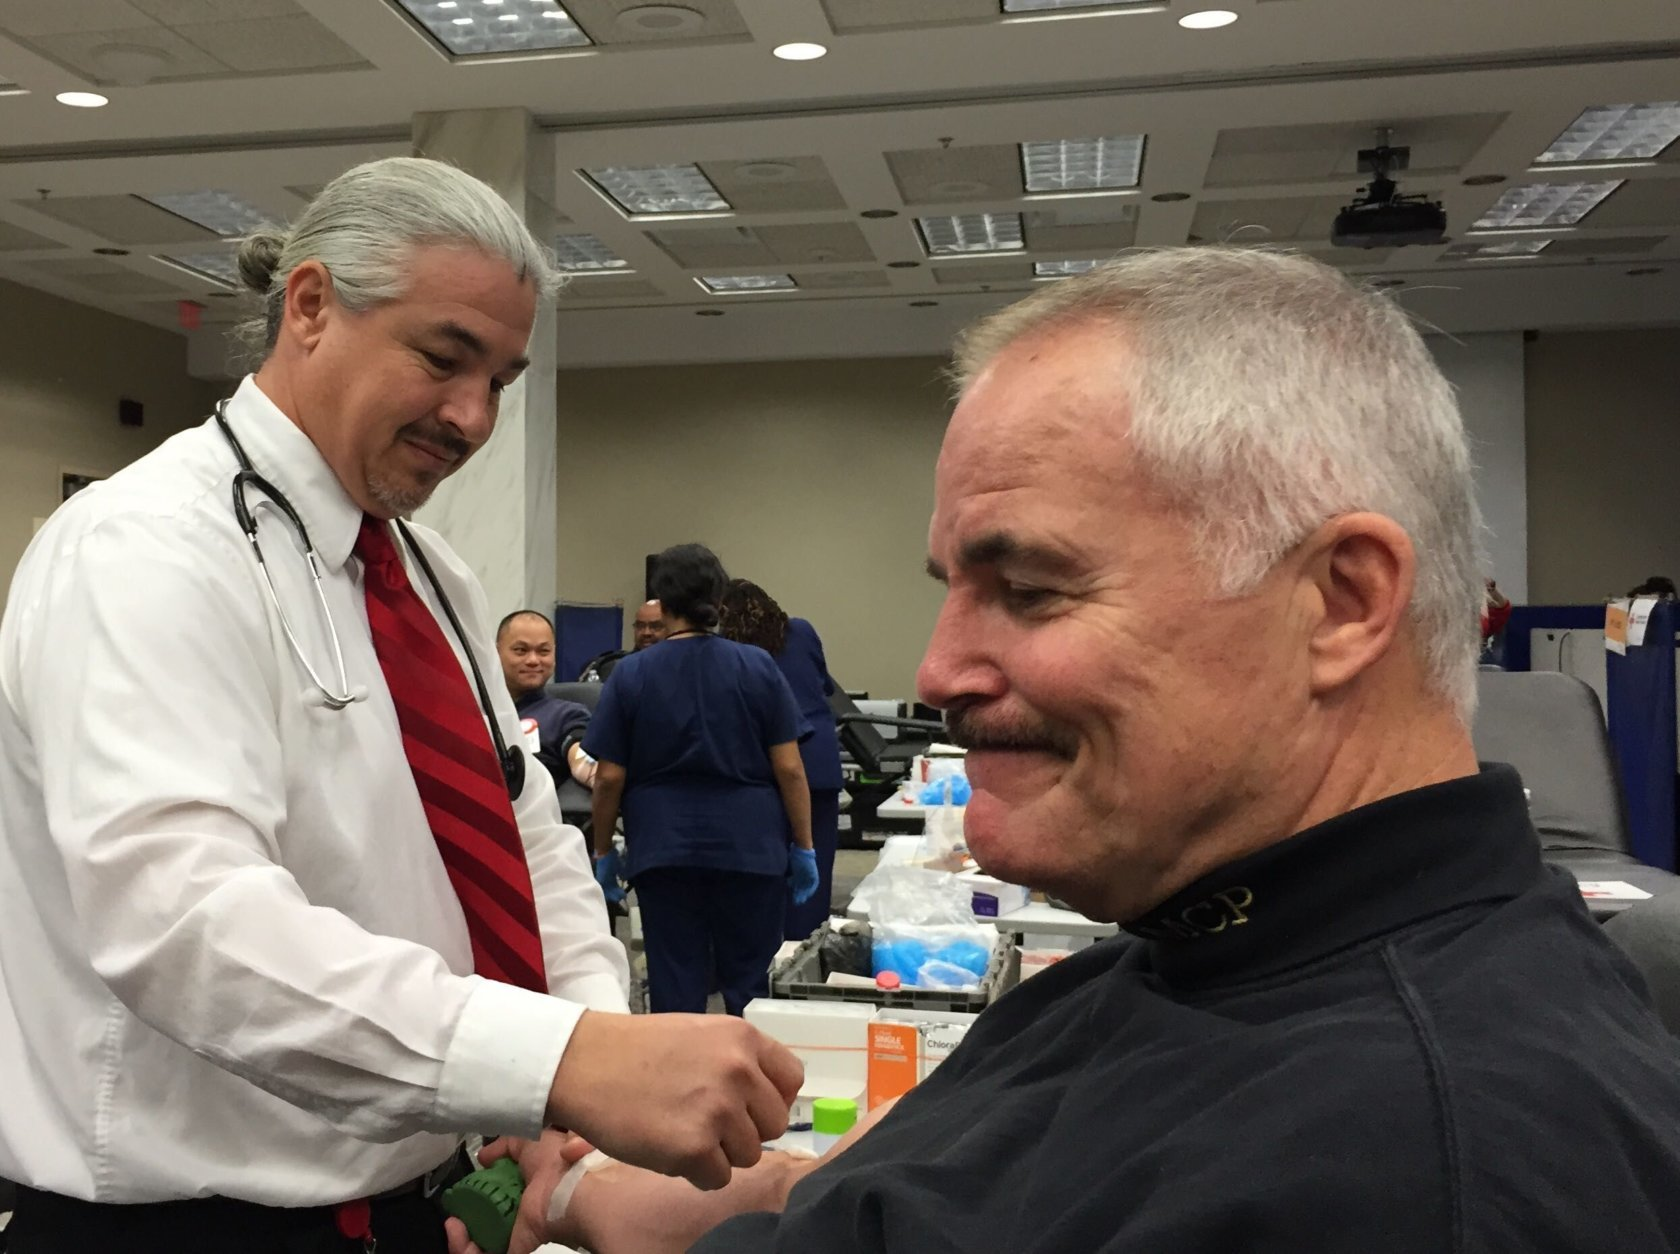 Police Chief Tom Manger donates blood at a blood drive named in honor of Officer Noah Leotta. (WTOP/Kate Ryan)